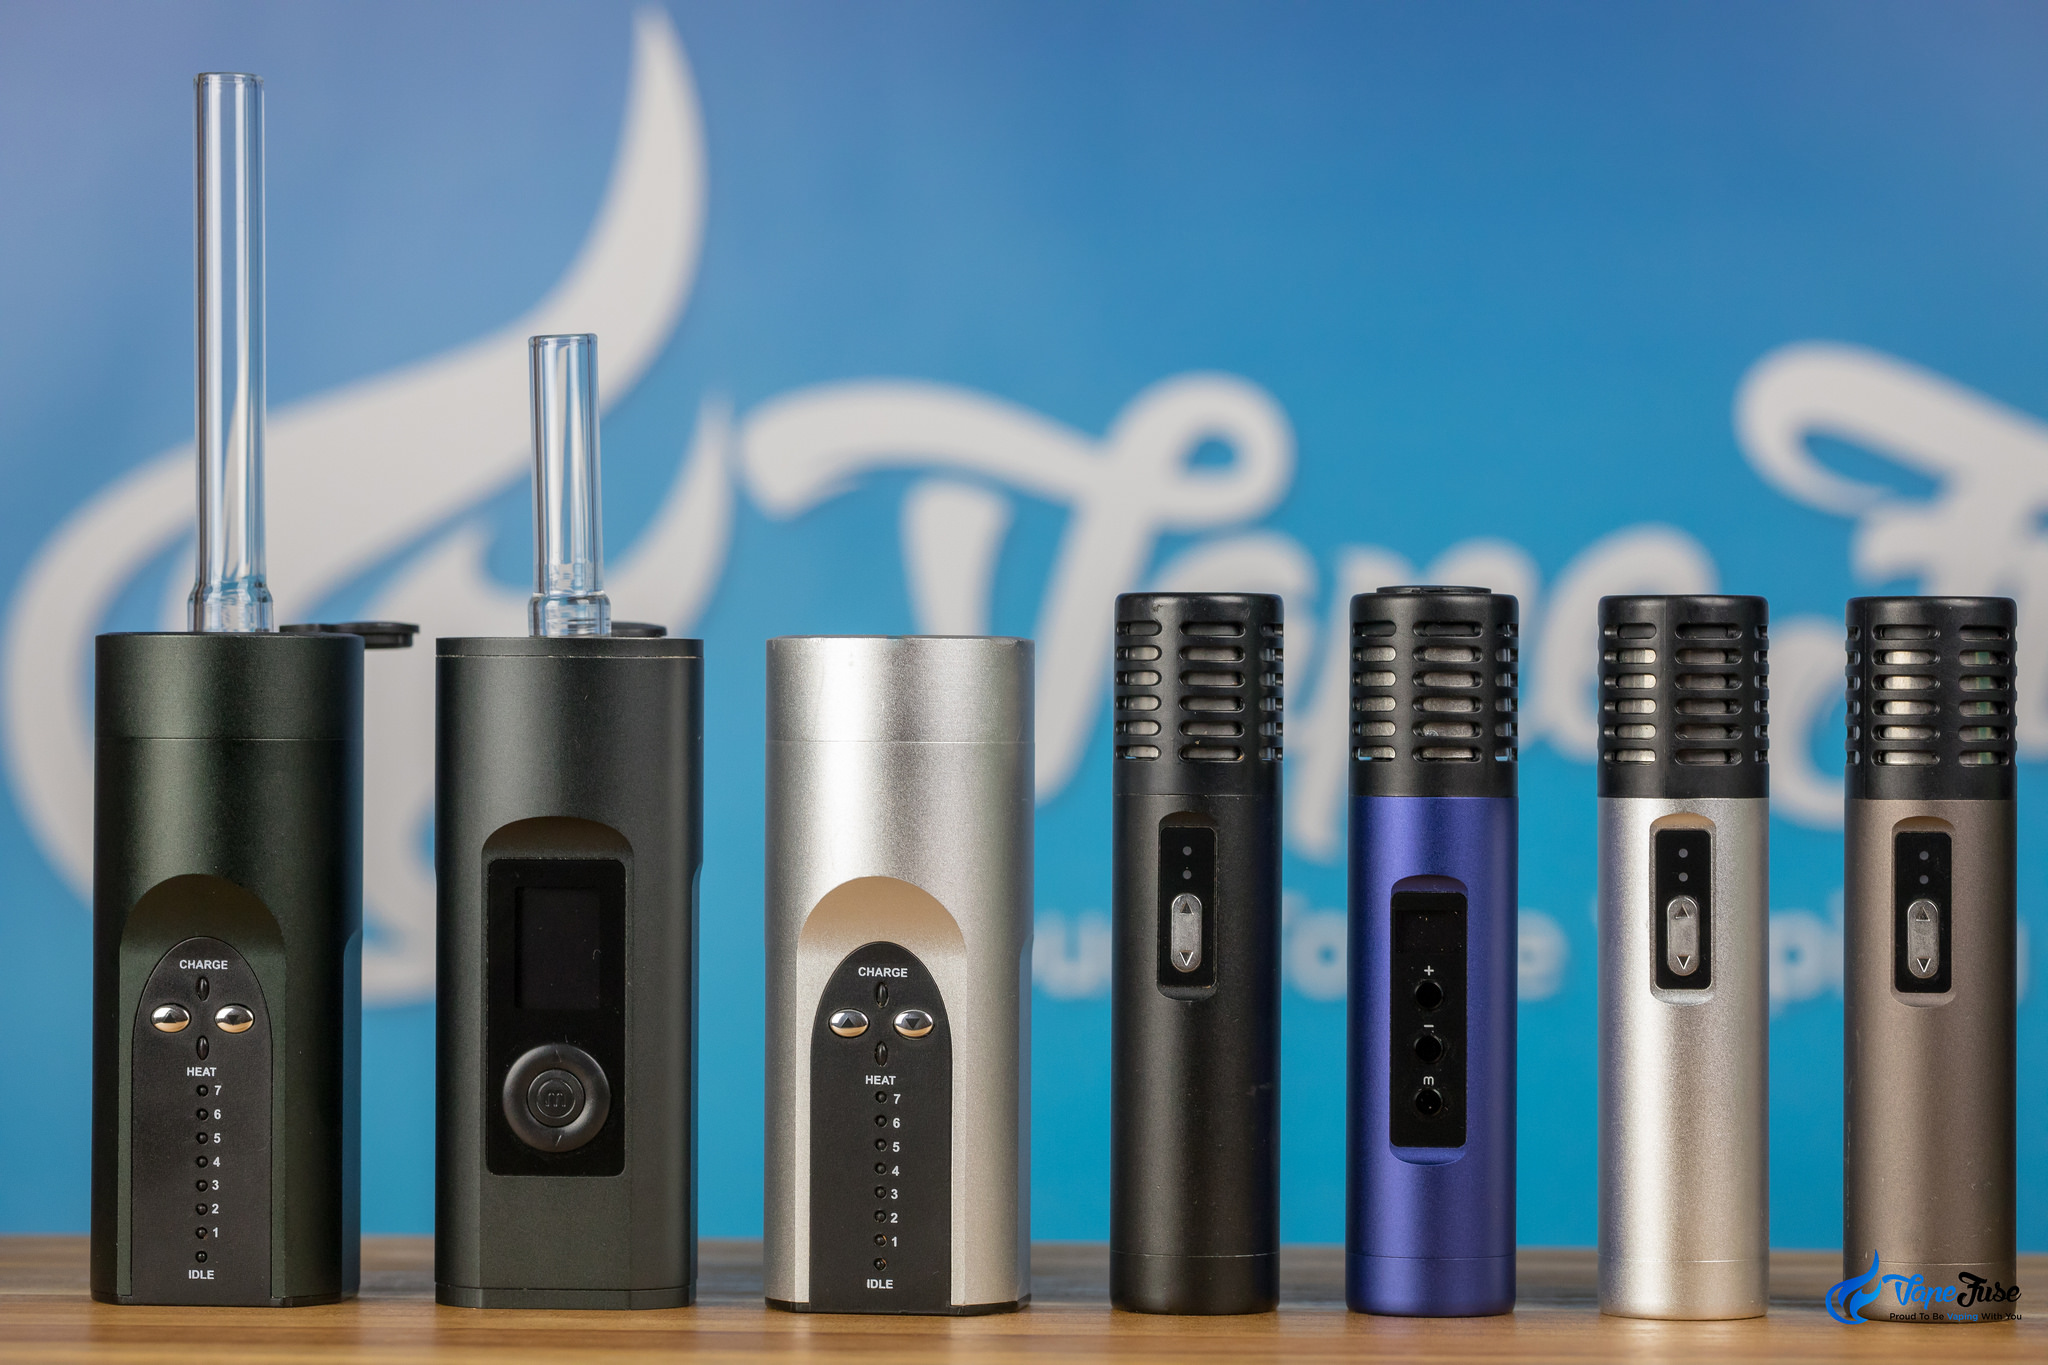 Arizer Portable Vaporizer Collection